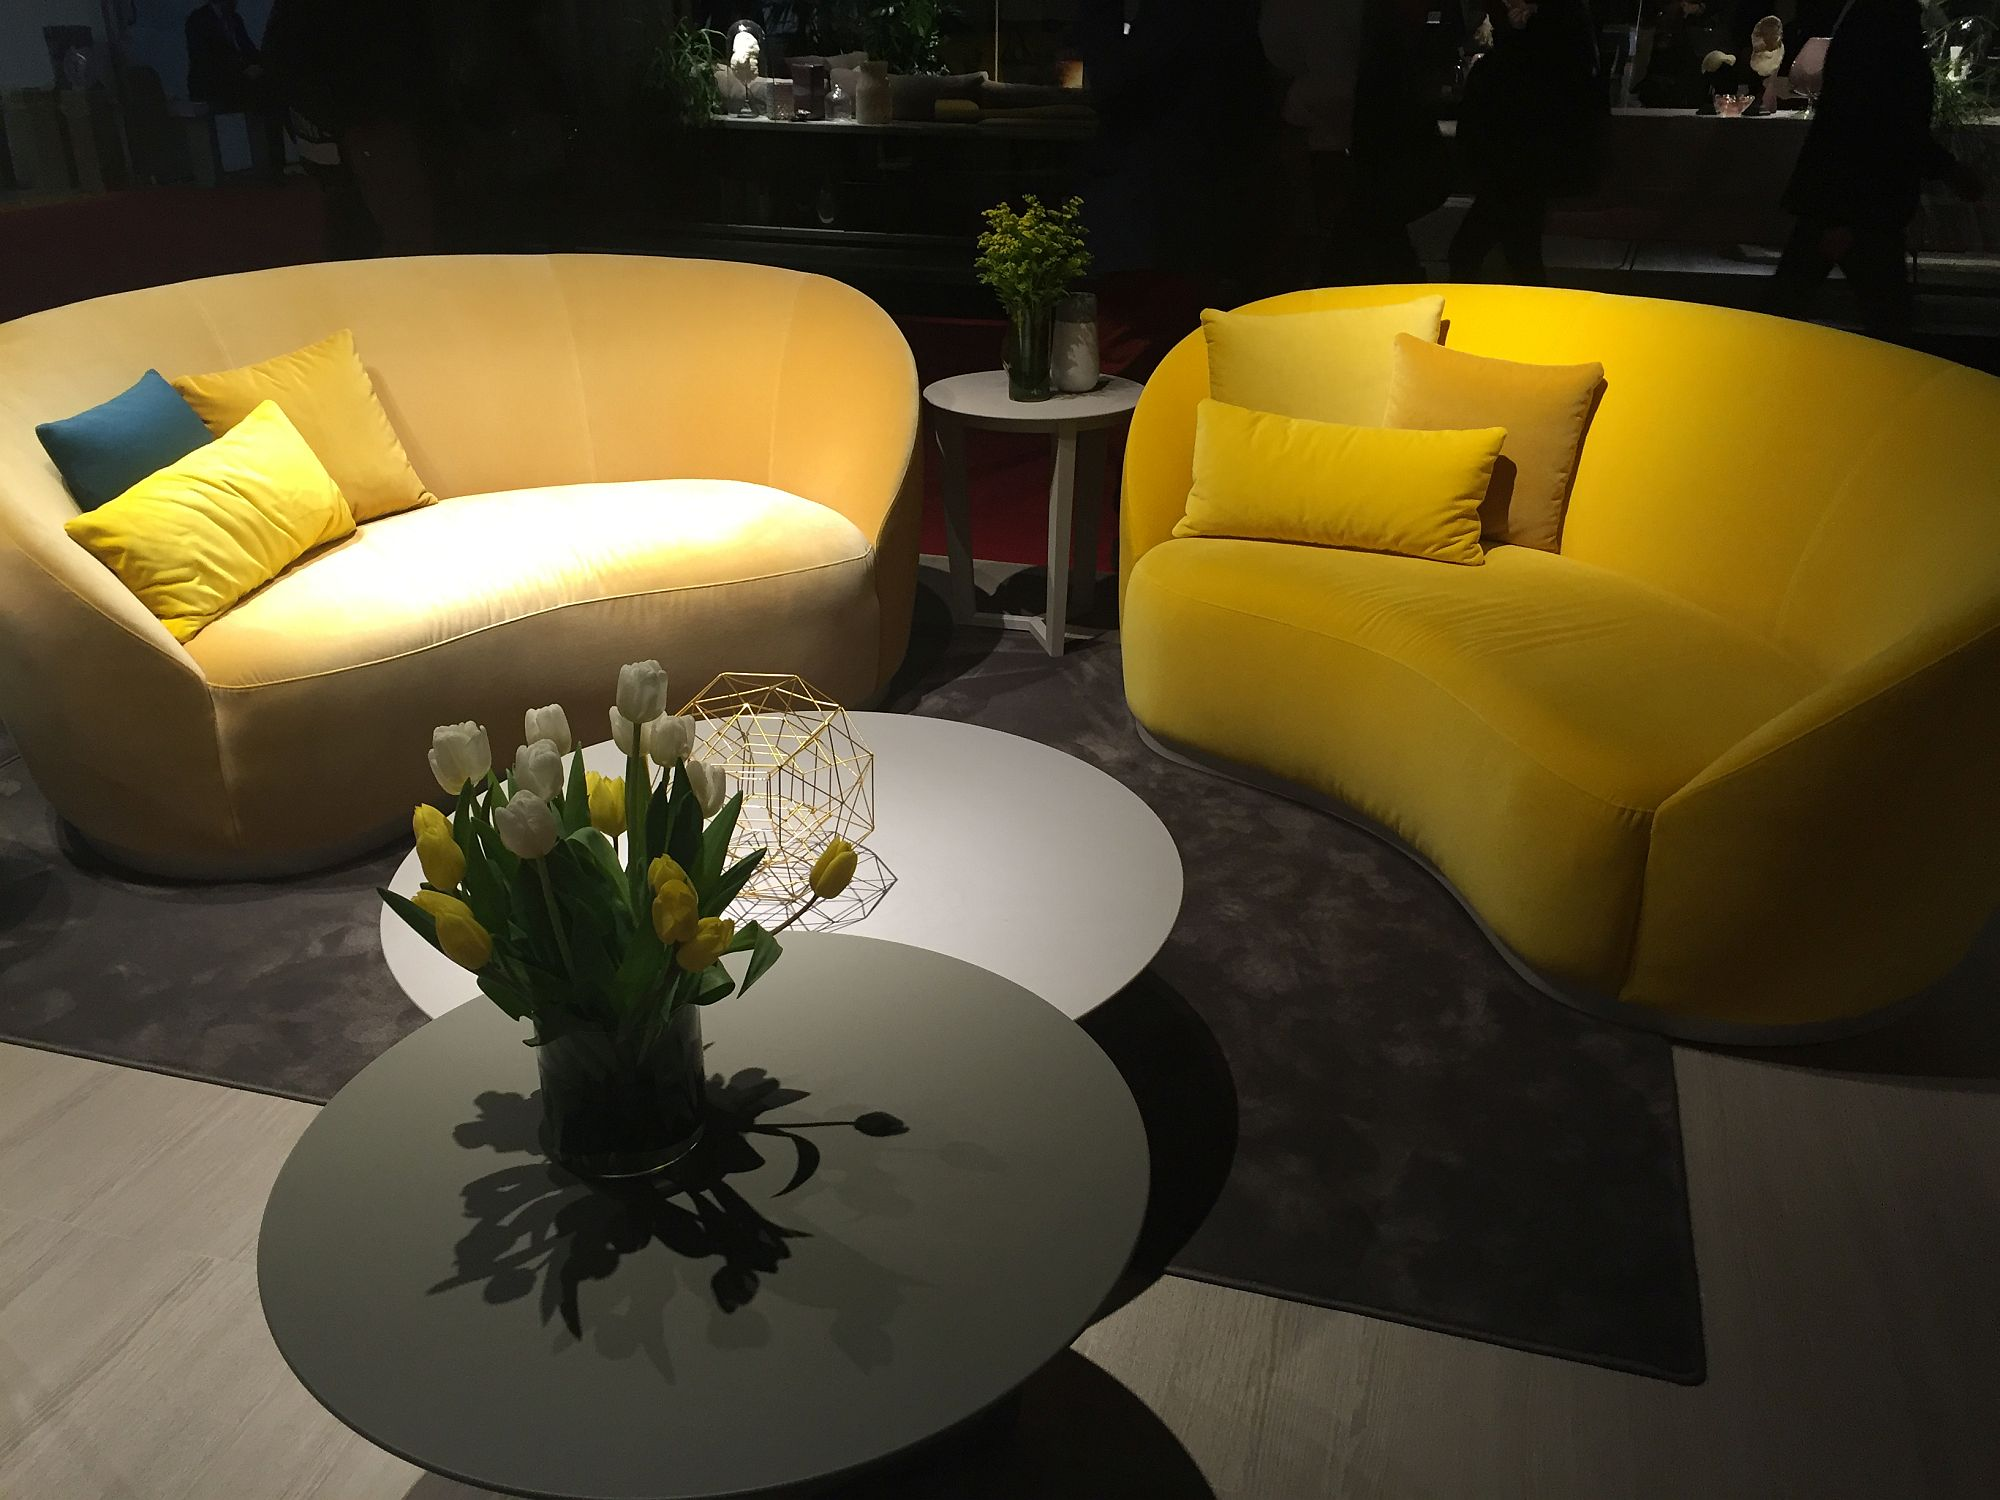 Think beyond the usual cohch designs to give your living room a refreshing modern vibe